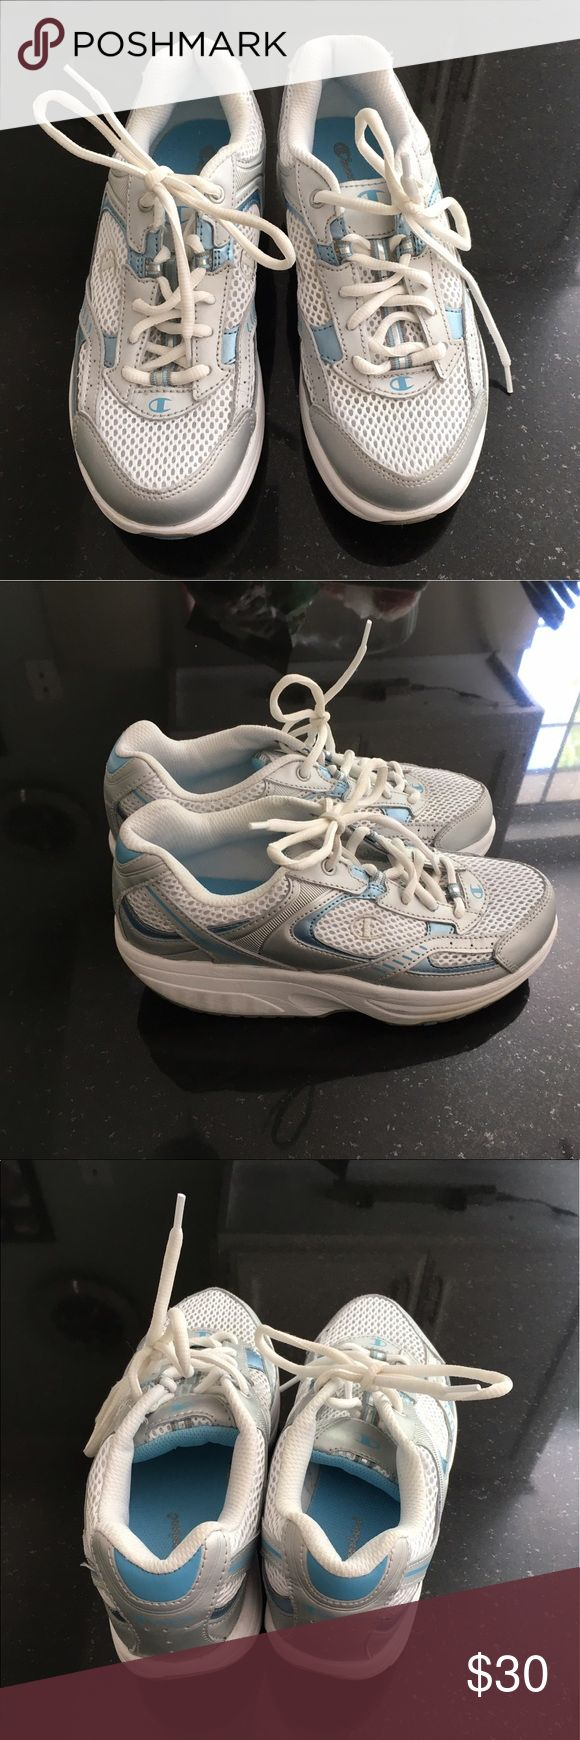 Champion sneaker / Ergonomic Shoes Champion sneaker / Ergonomic Shoes, white, skid-resistant, worn only once, like new condition. Size 7. Champion Shoes Sneakers